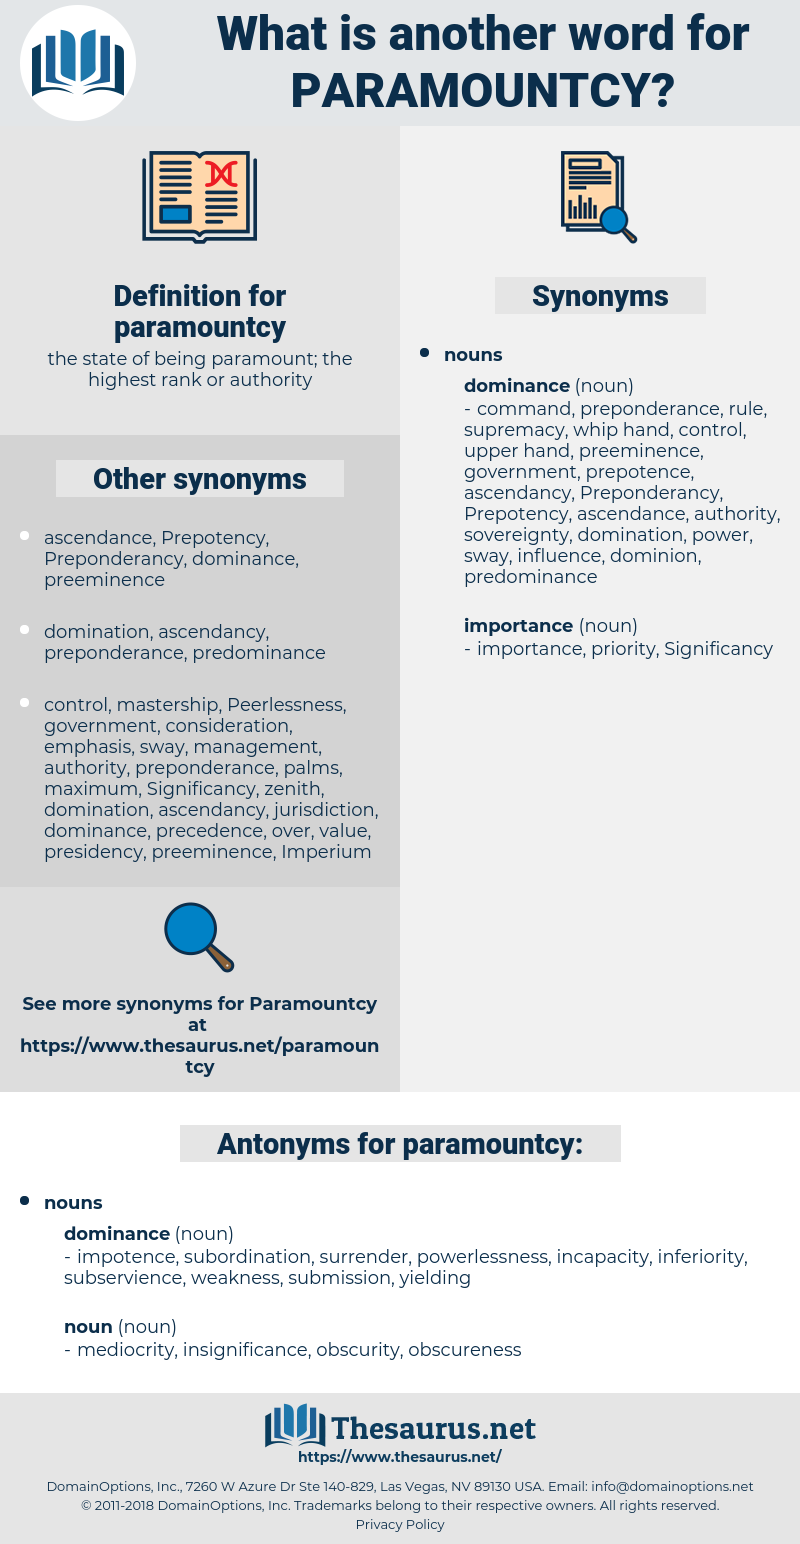 paramountcy, synonym paramountcy, another word for paramountcy, words like paramountcy, thesaurus paramountcy